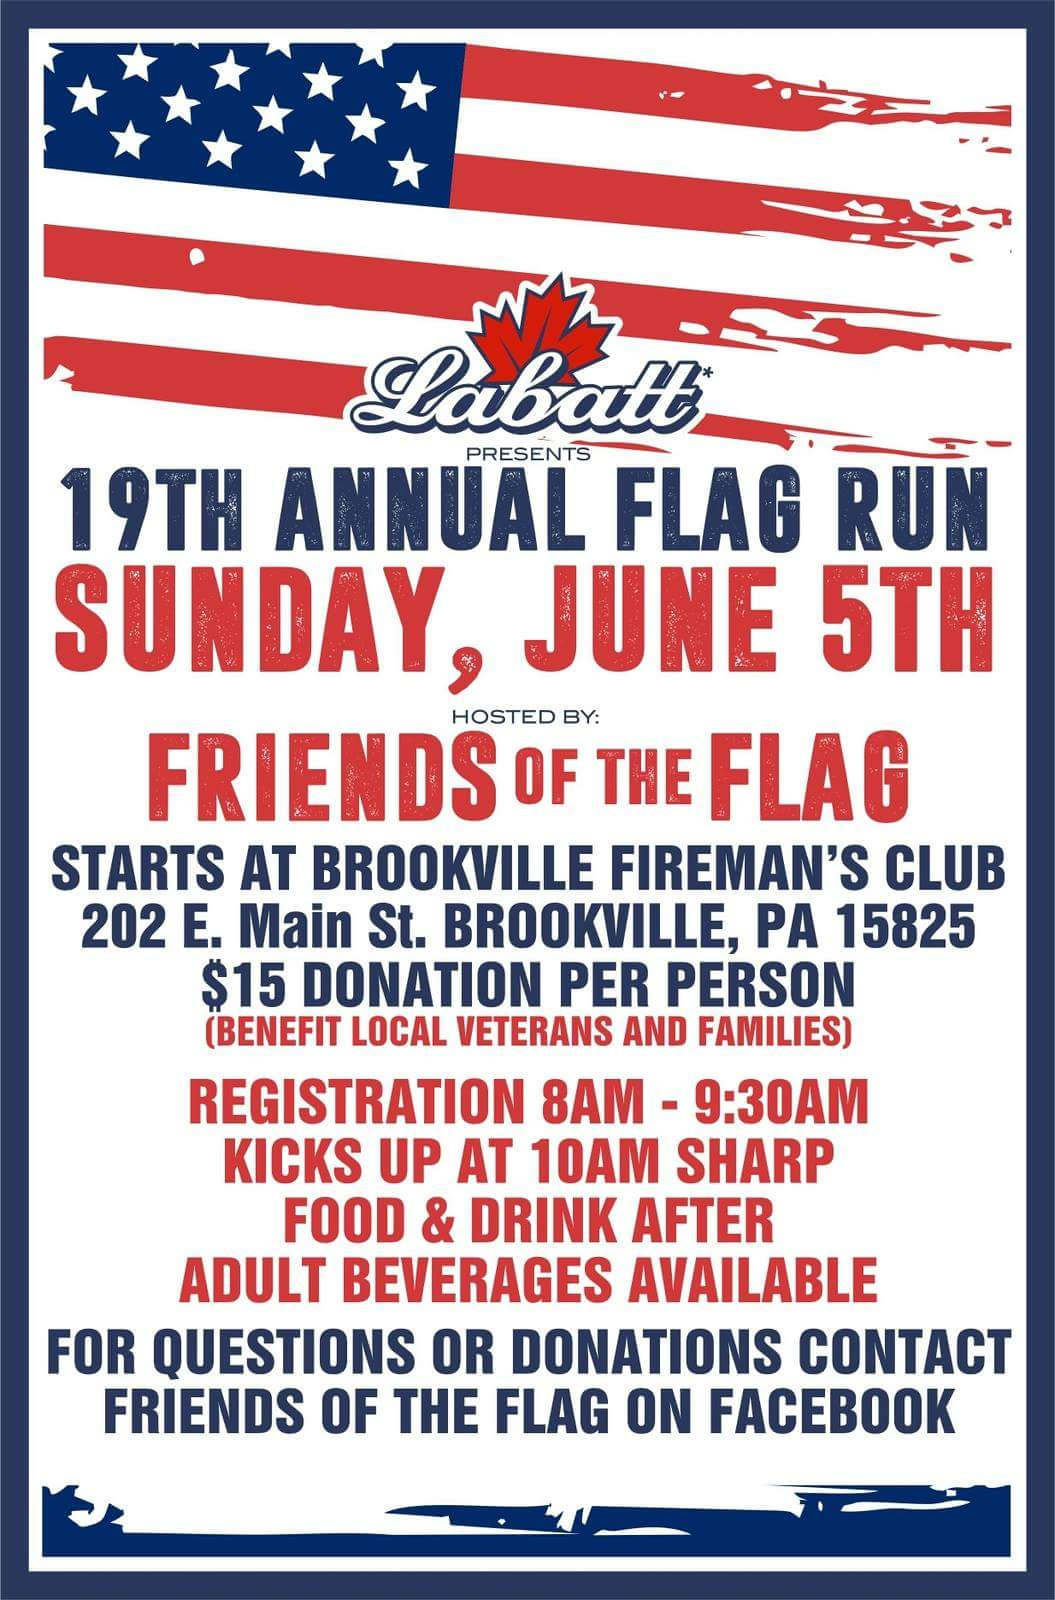 Friends of the Flag flyer